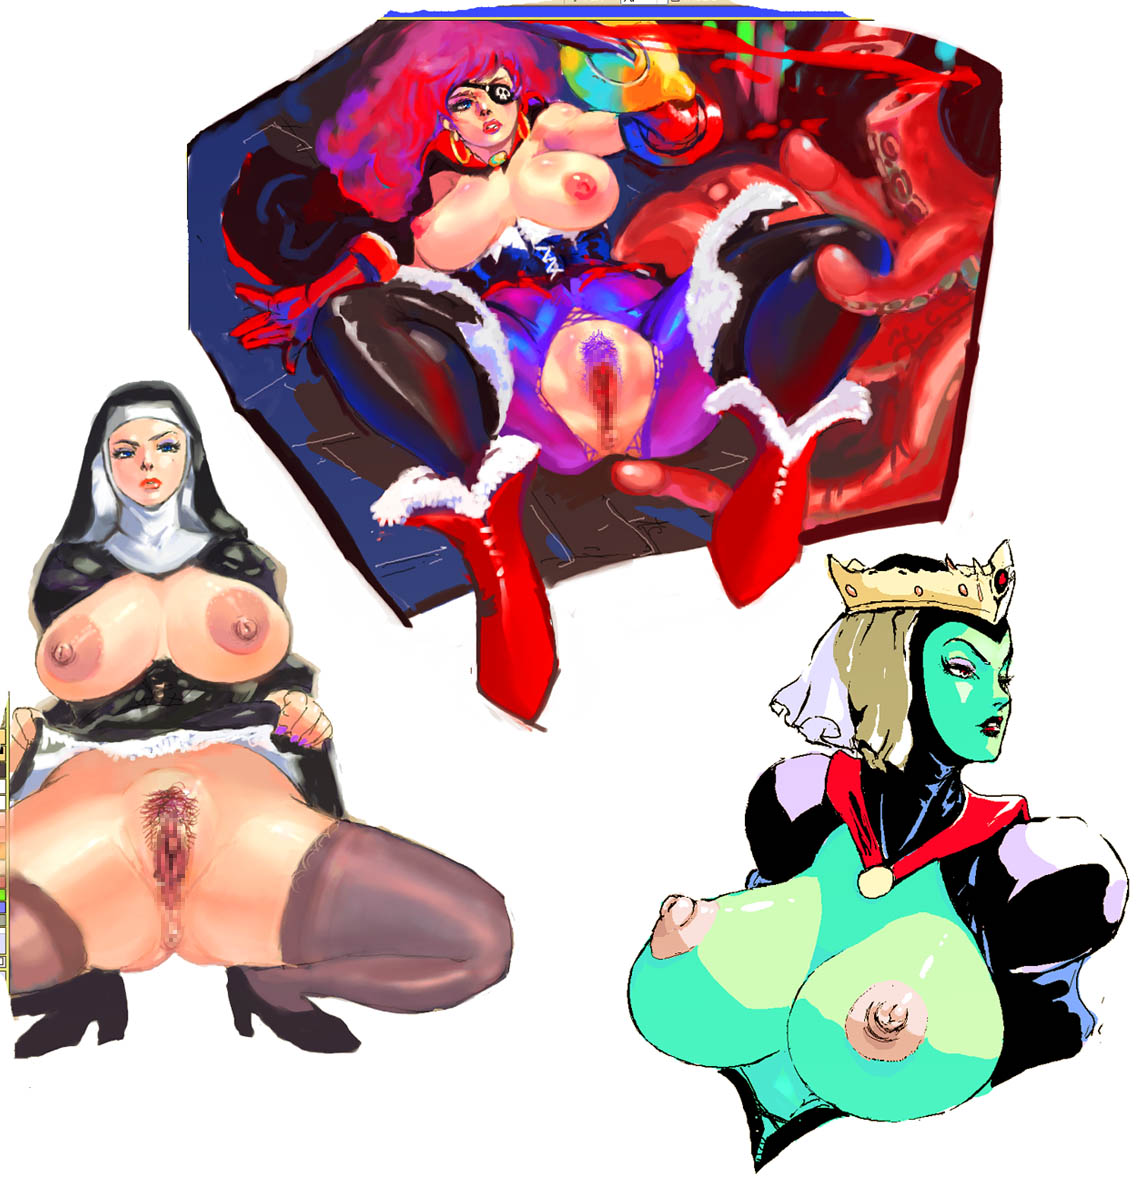 virtues hentai heavenly the seven Dragon ball fighterz android 21 fanart